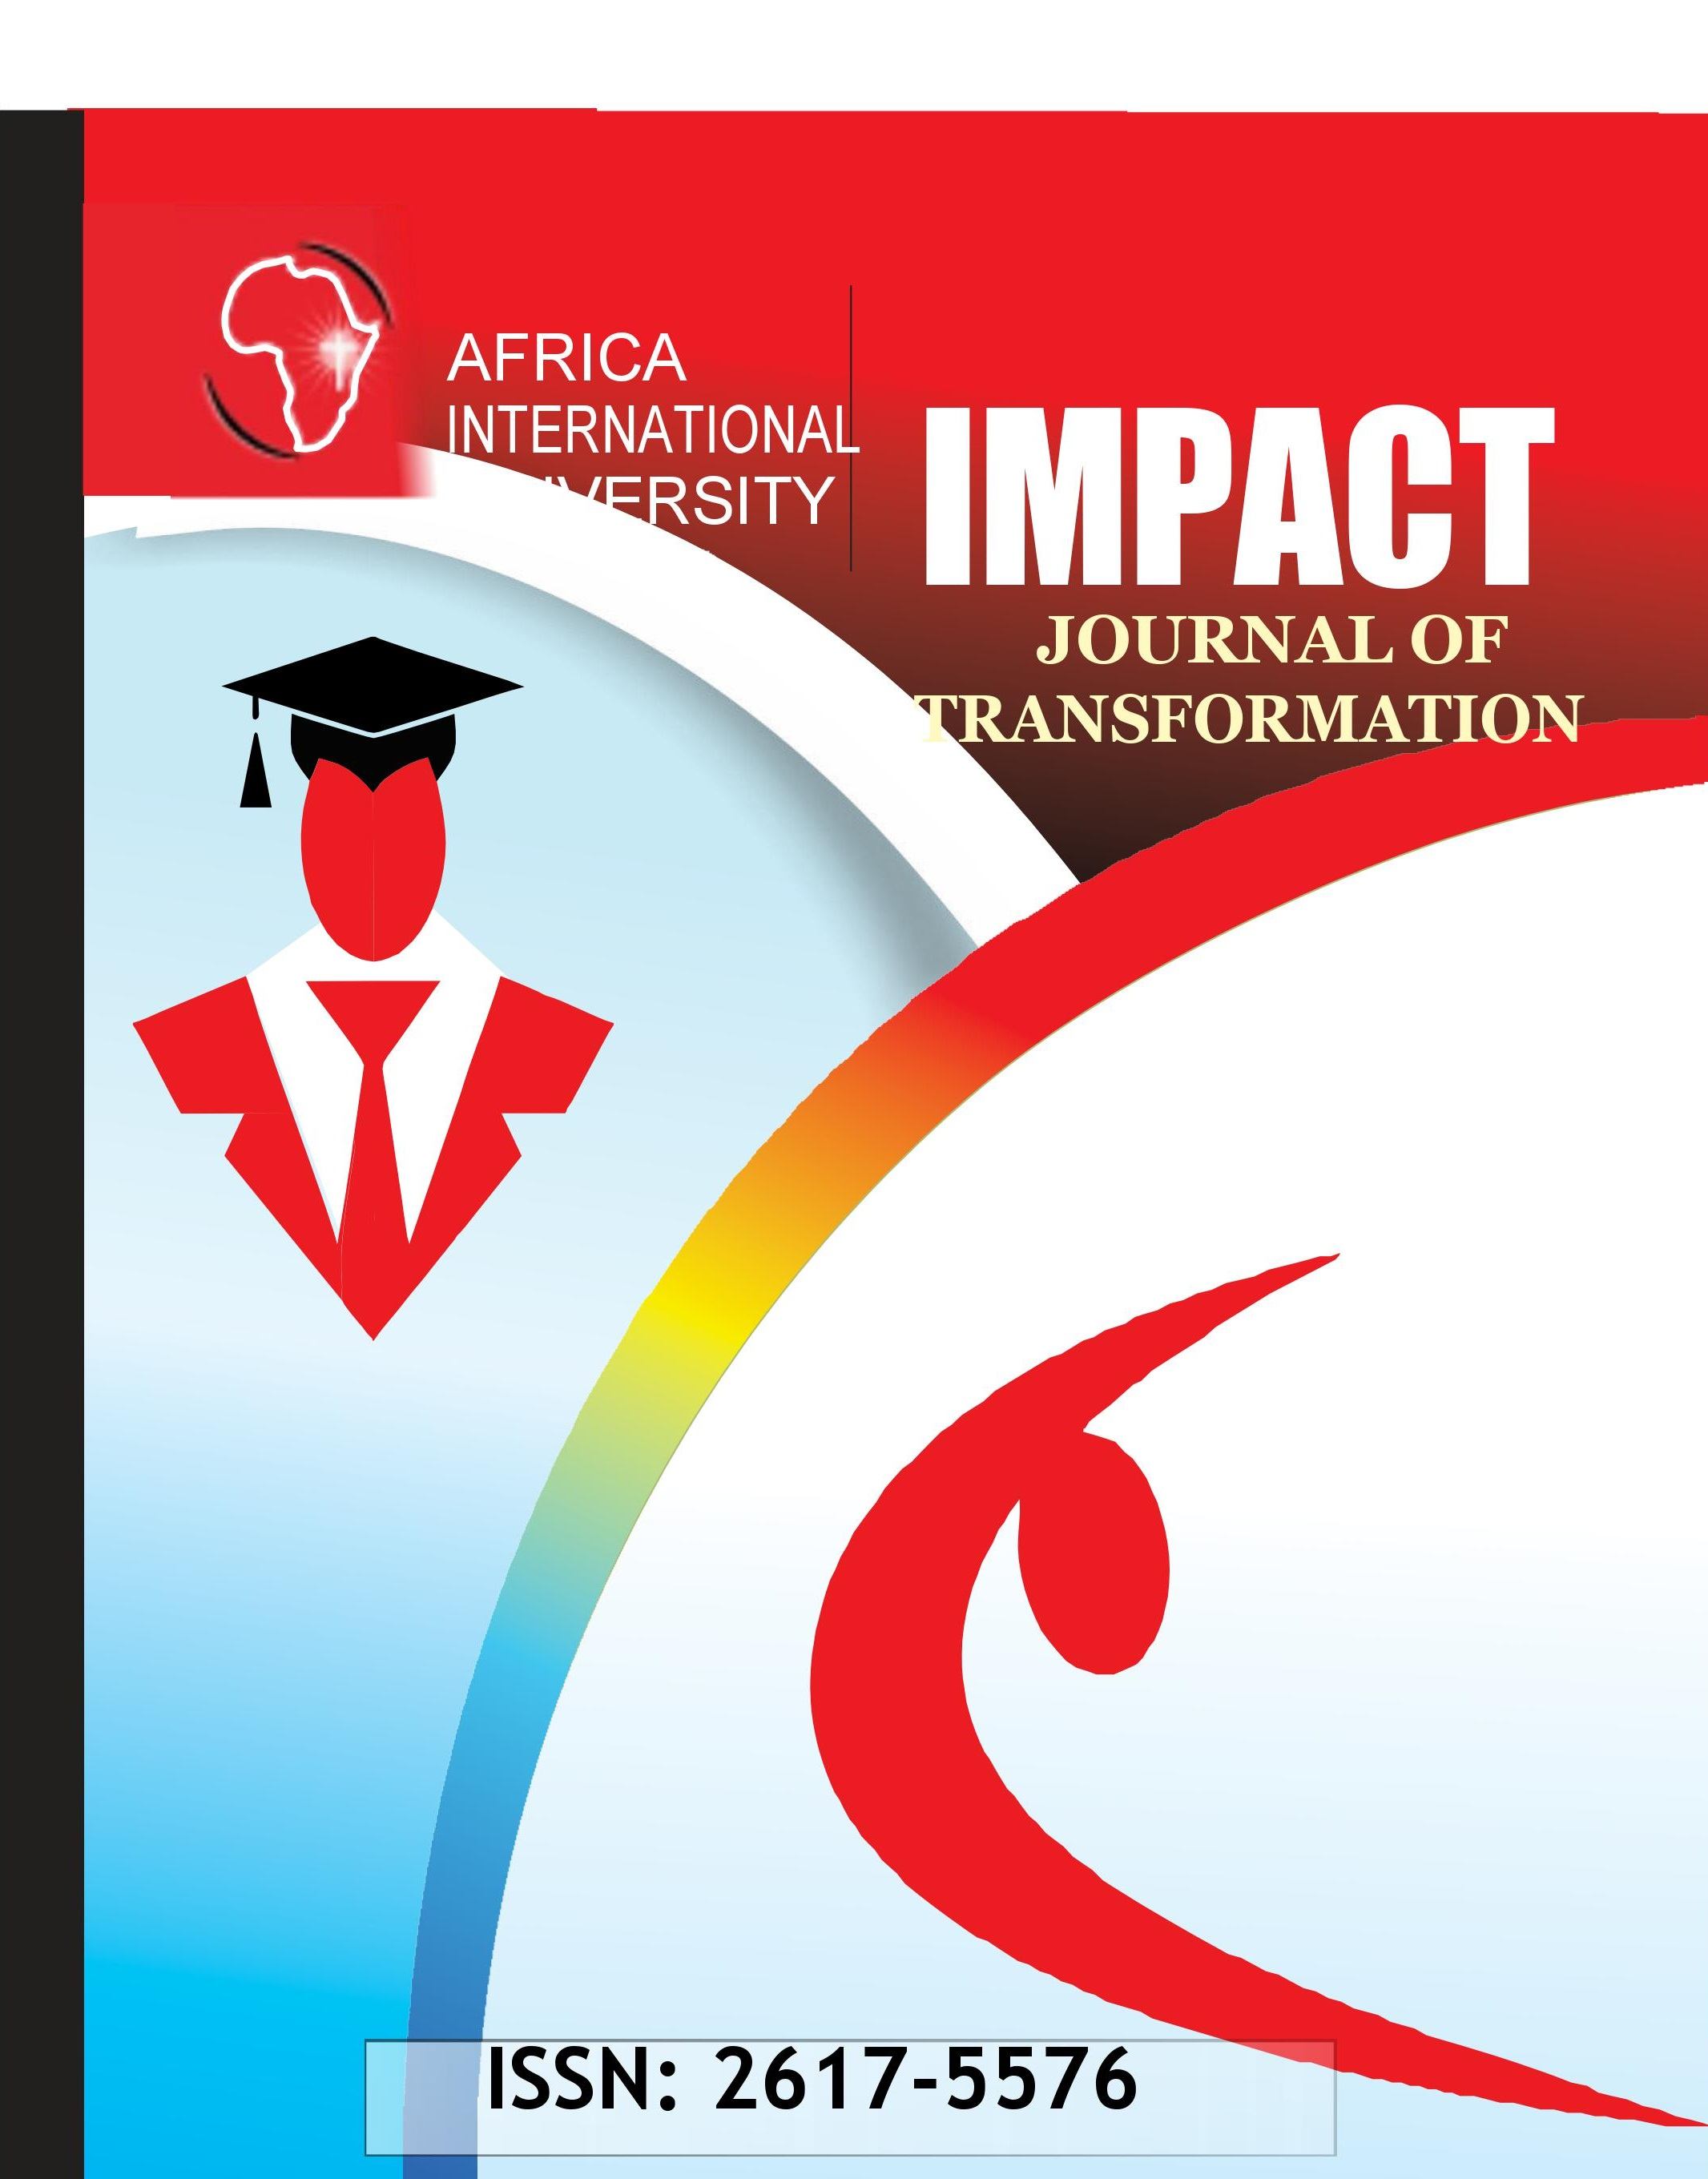 View Vol. 3 No. 1 (2020): Impact: Journal of Transformation